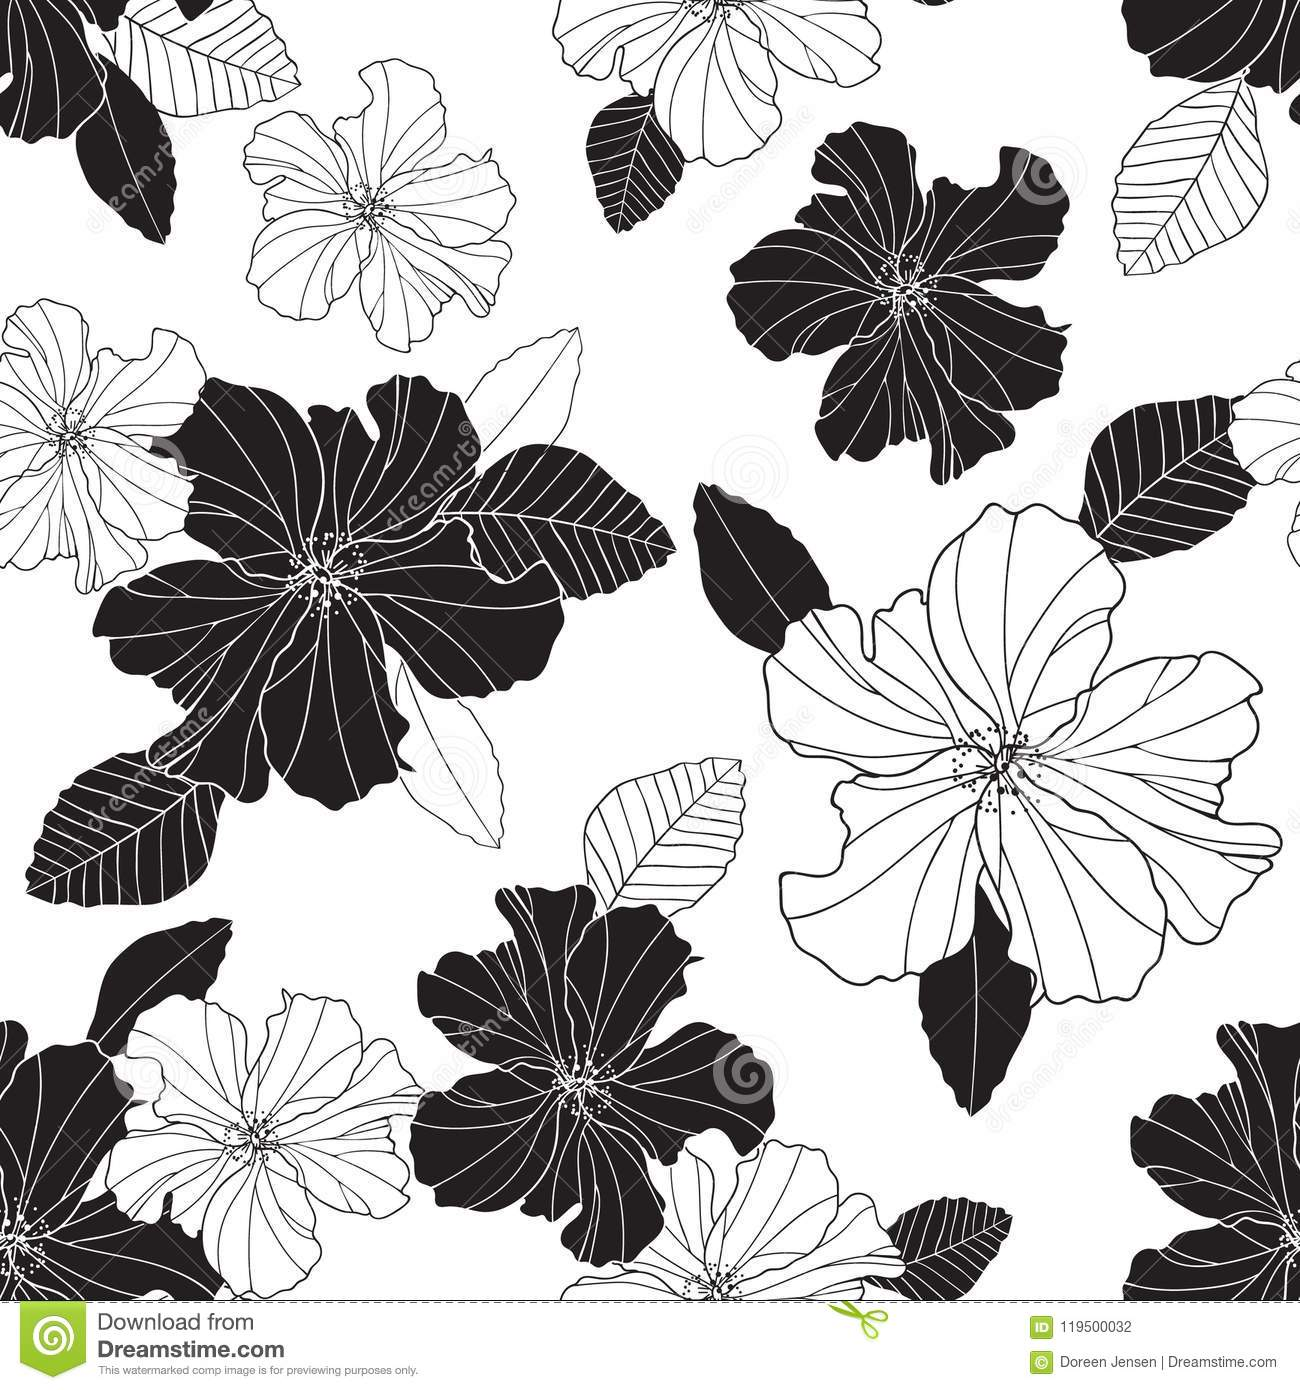 Seamless vector repeat black and white hibiscus flowers and leaf seamless vector repeat black and white hibiscus flowers and leaf izmirmasajfo